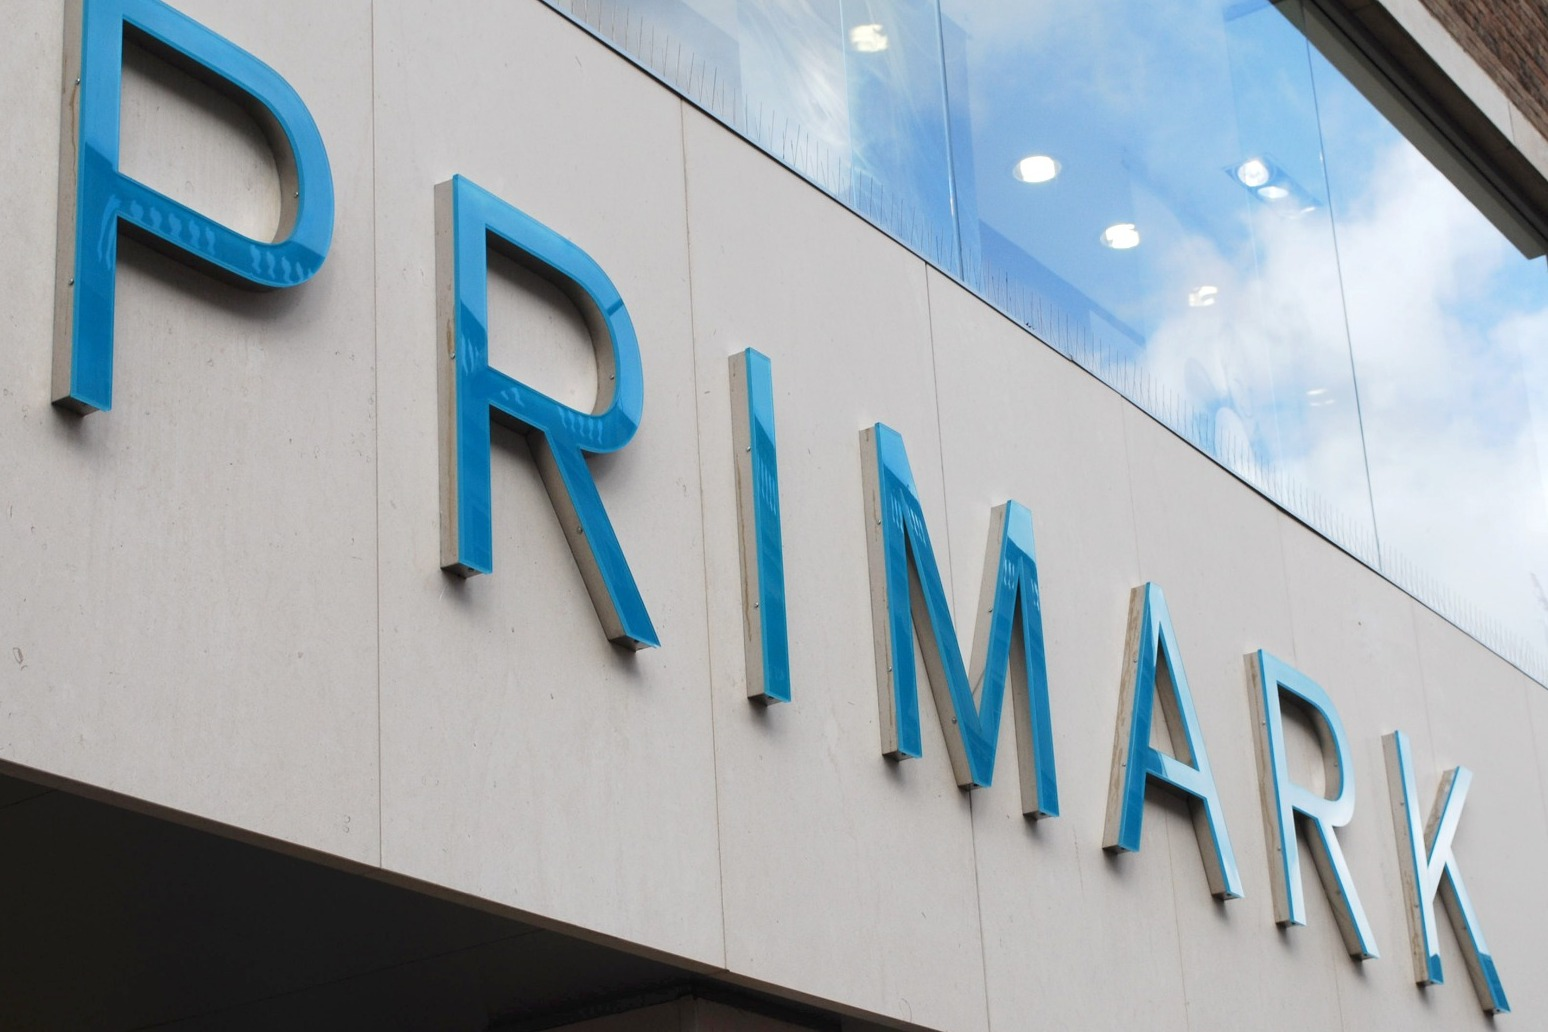 Price of Primark clothes 'will not rise despite inflationary pressures'